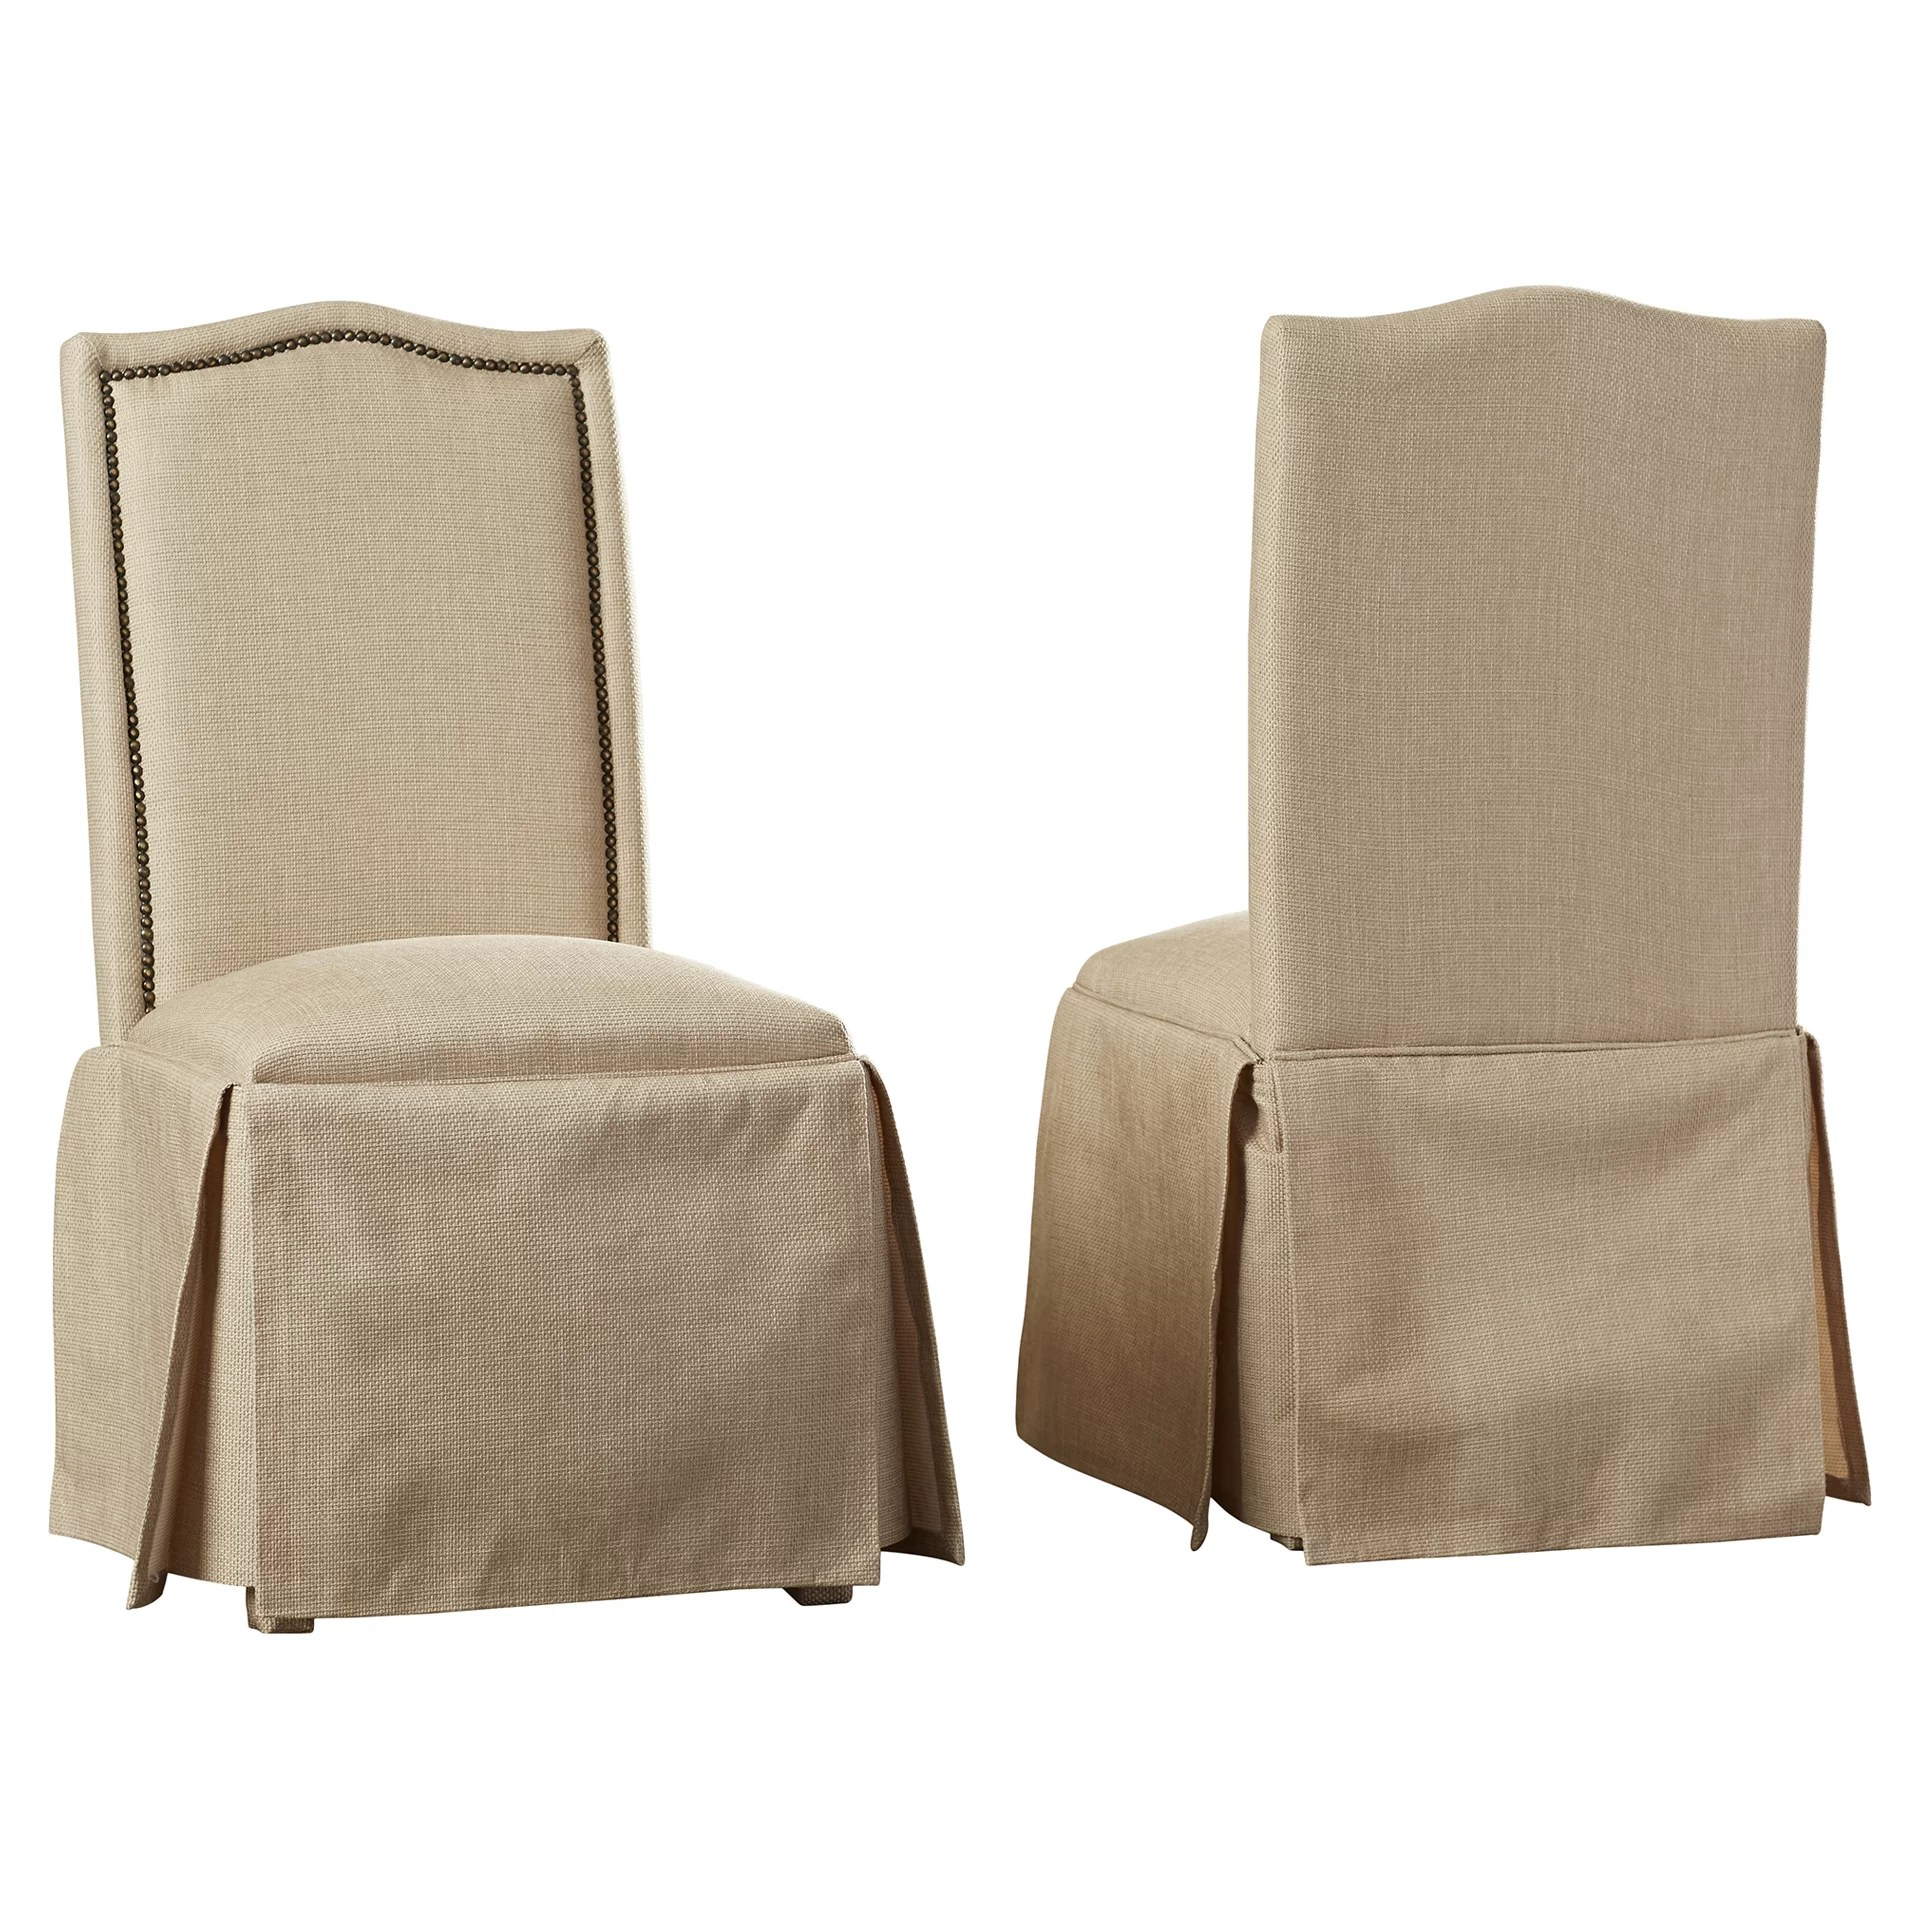 parson chairs wedding chair covers suffolk alison skirted upholstered reviews joss main